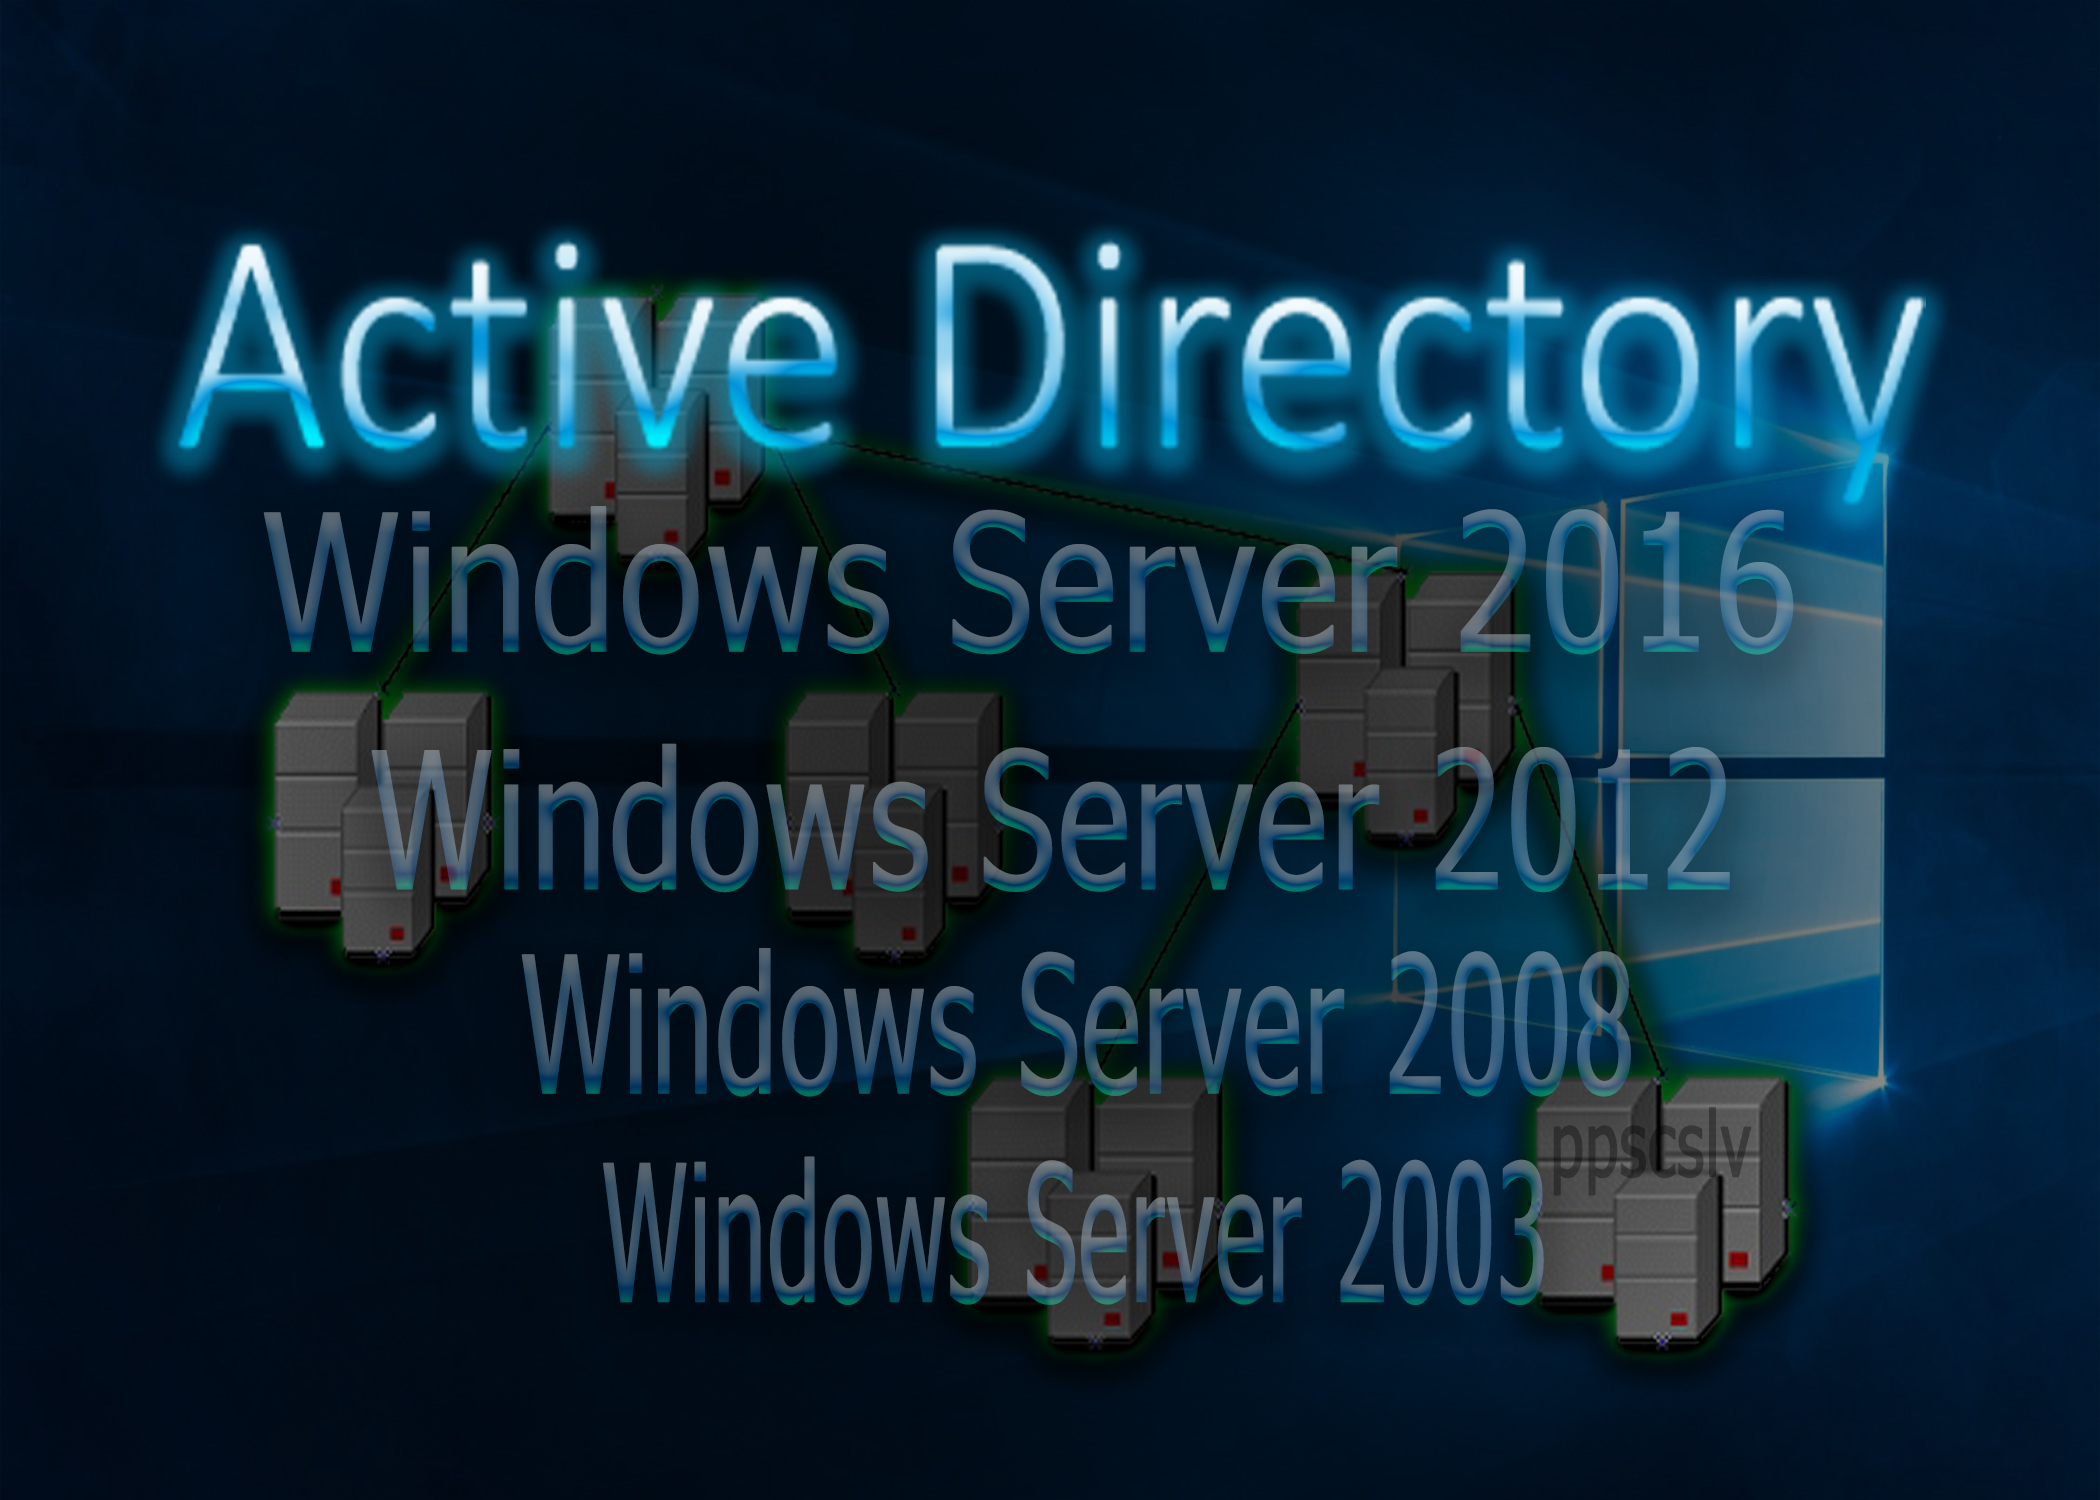 configure Active Directory on Windows Server 2016, 2012 or 2008